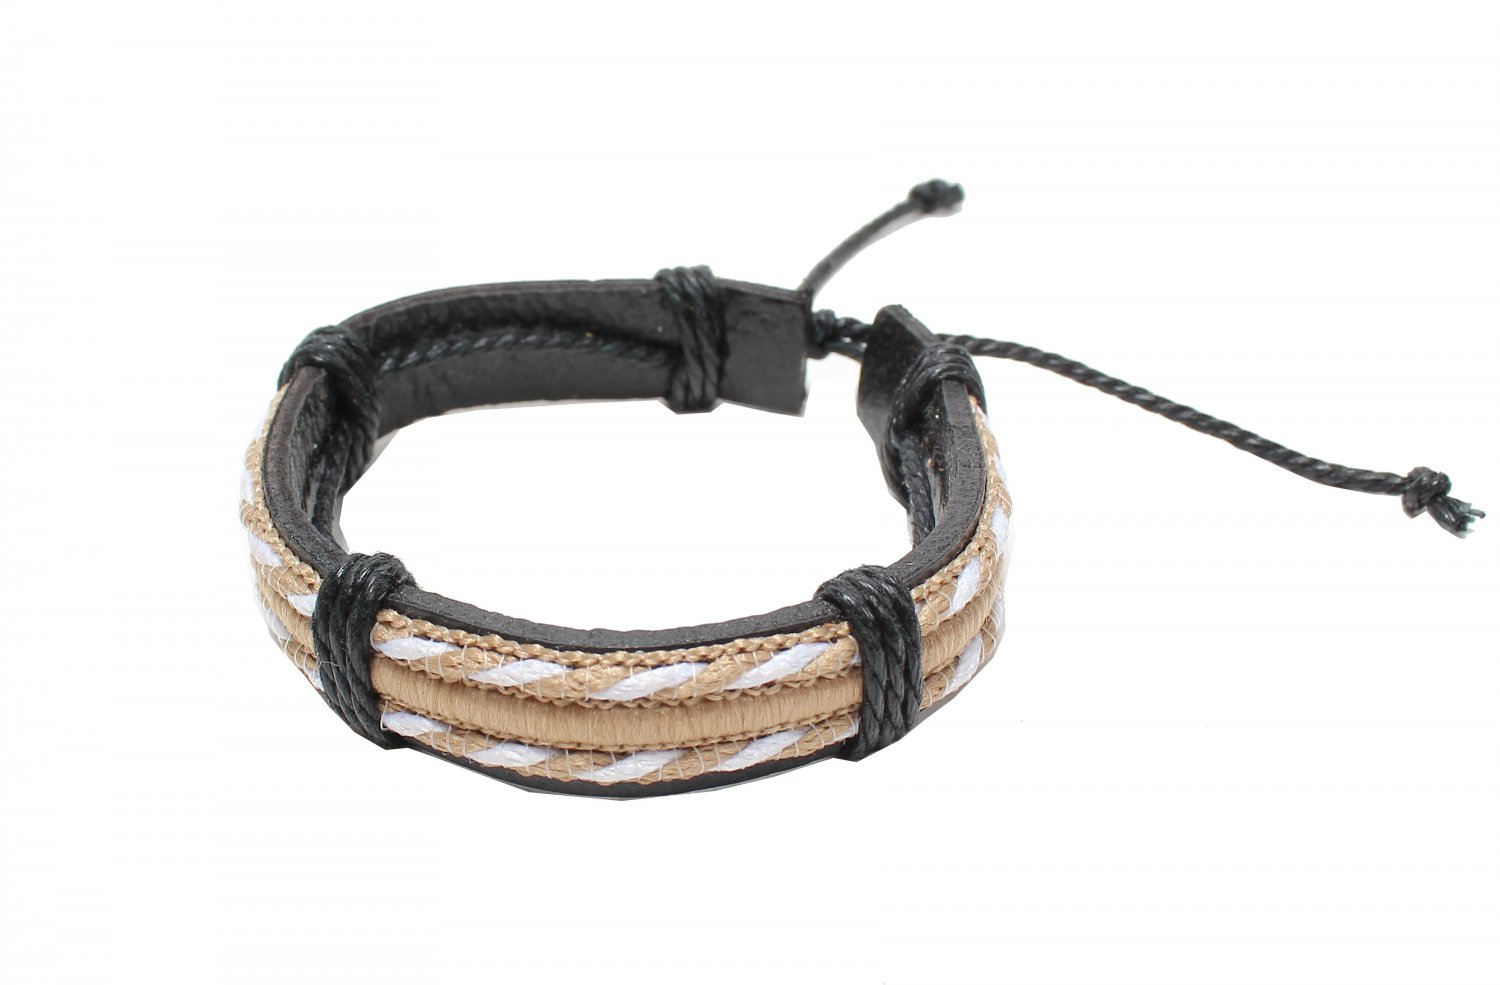 White and Light Brown Strings with Leather Bracelet (B627S)